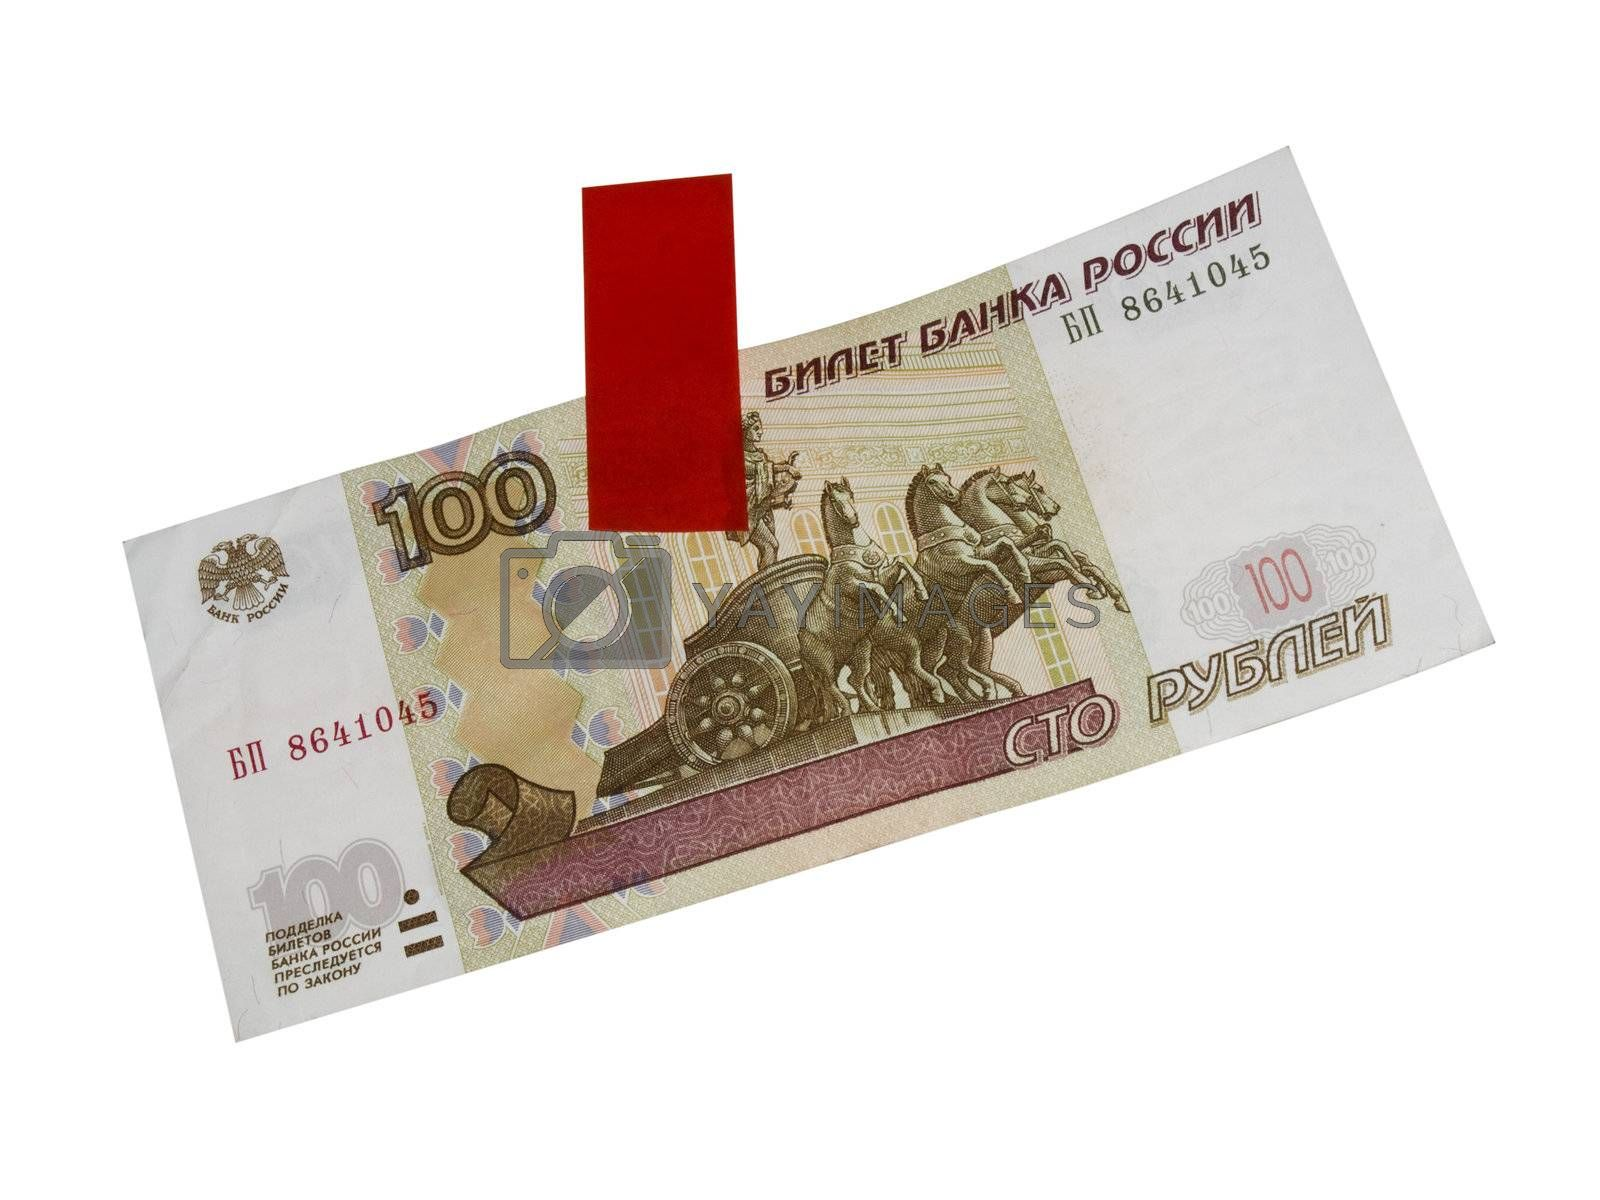 Russian  money. 100 rubles and adhesive tape isolated on white